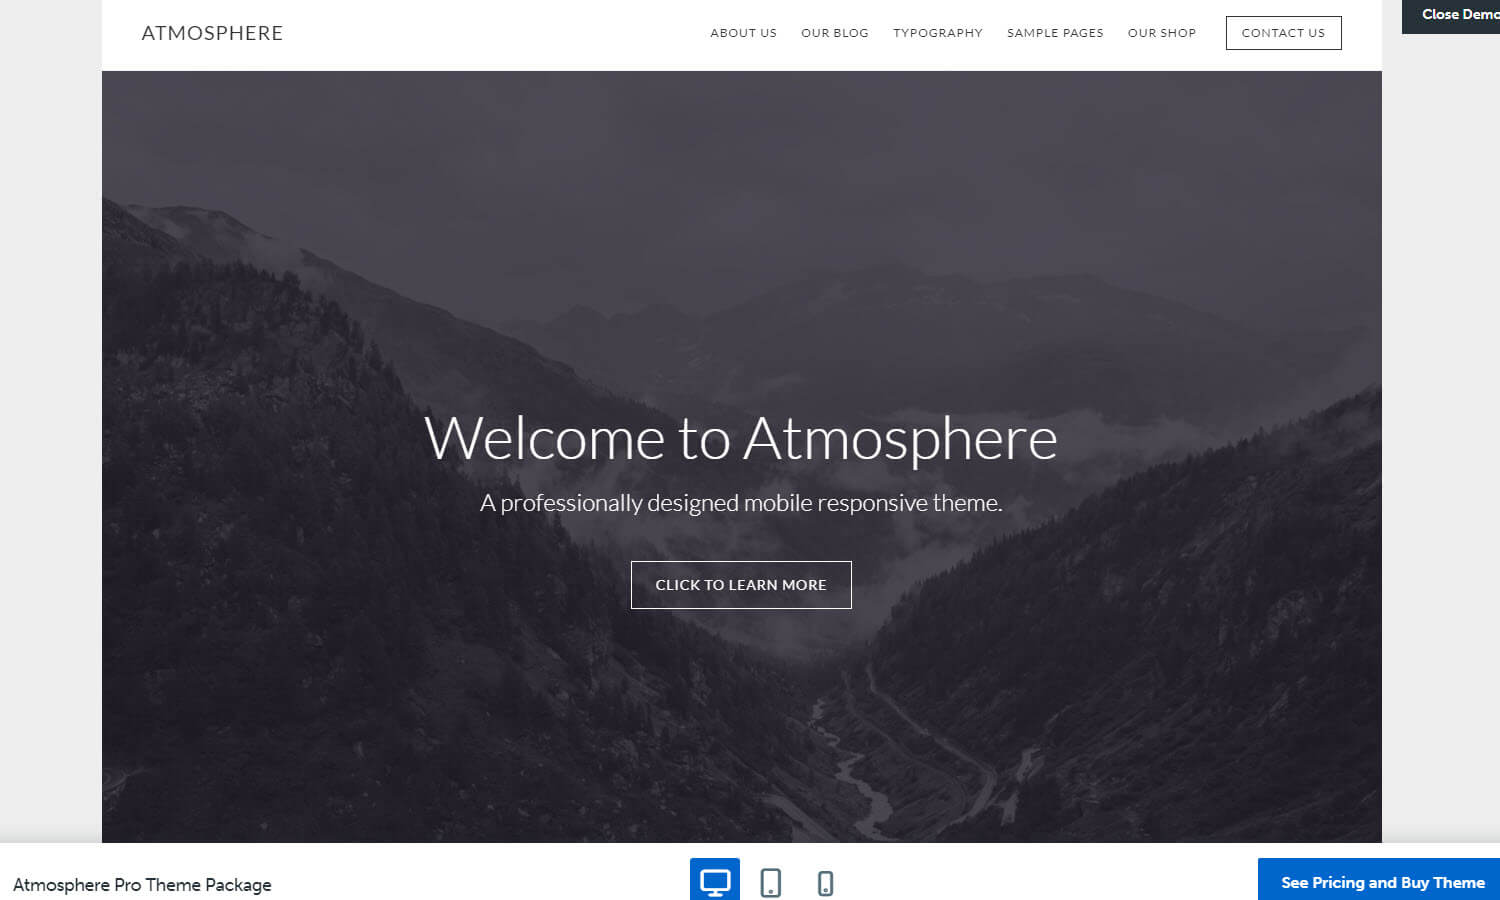 Atmosphere Pro screenshot